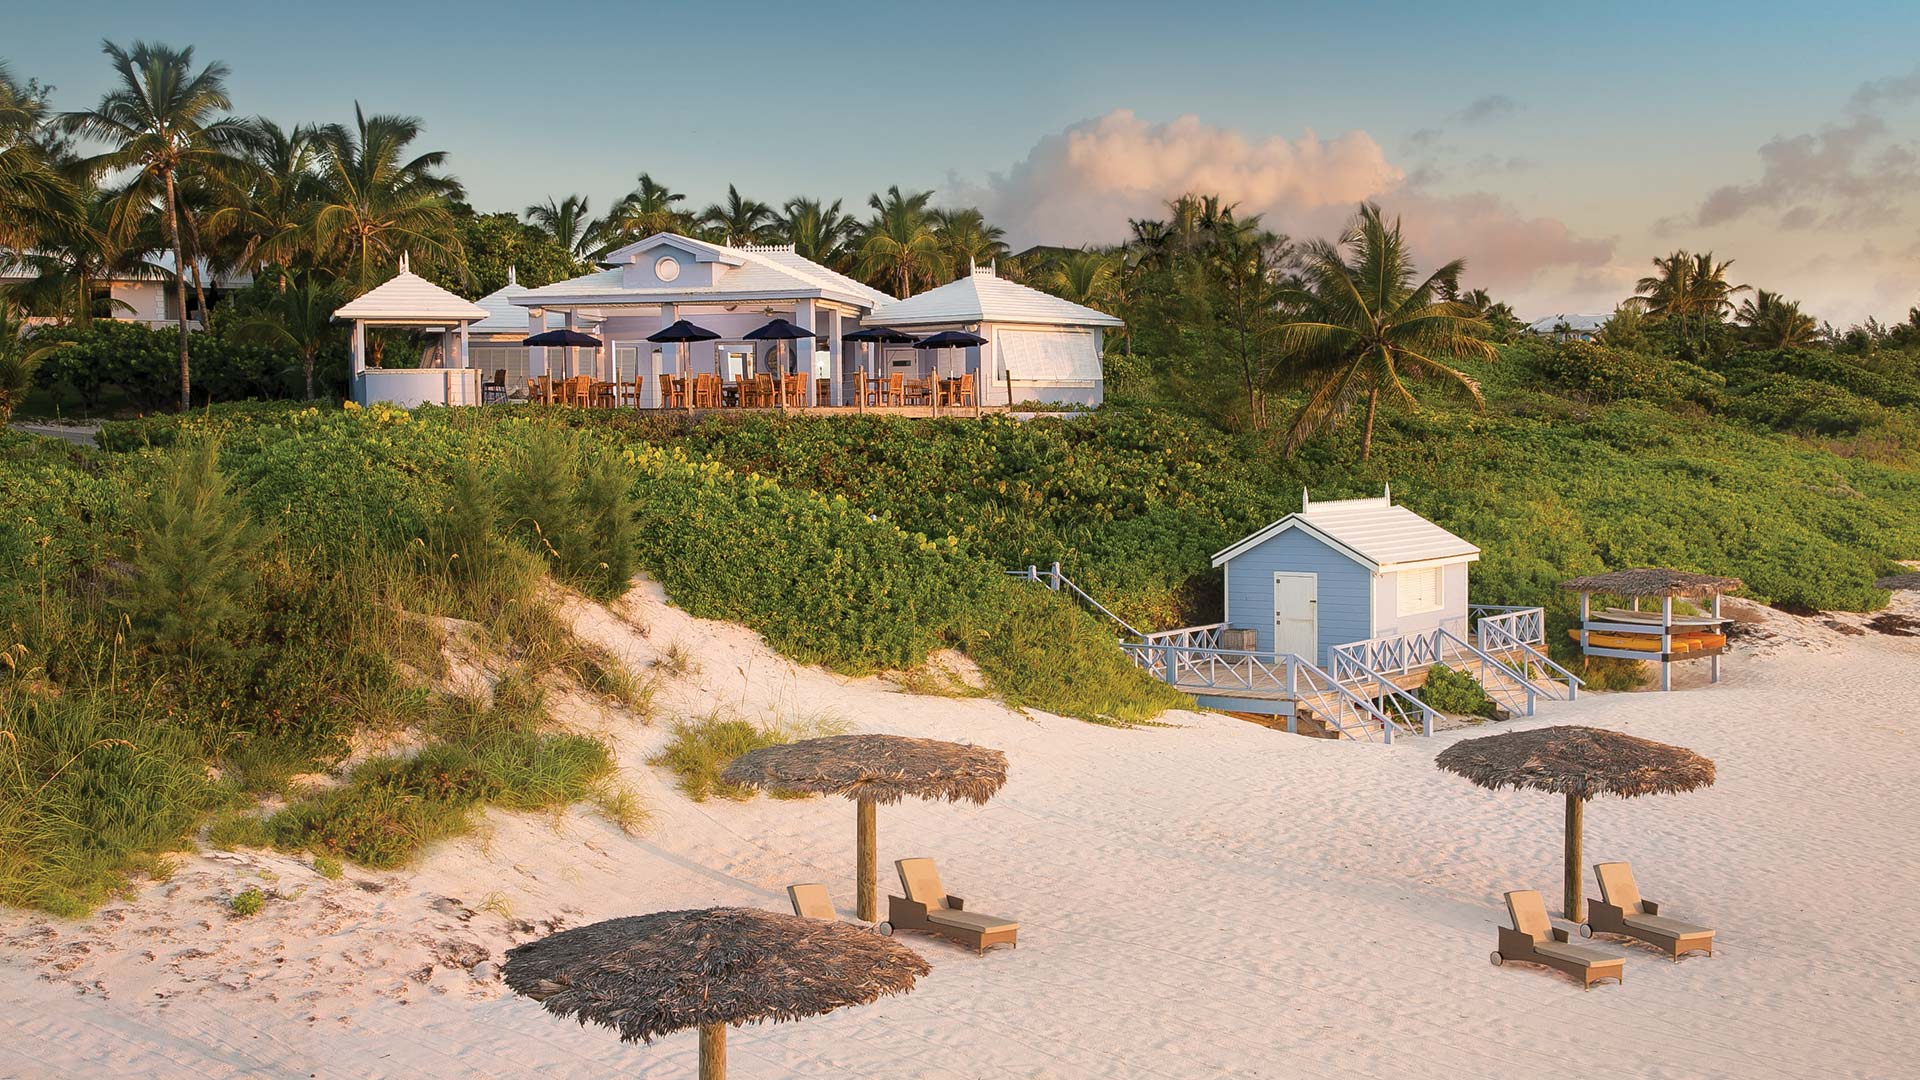 View of the resort from Pink Sands beach | Luxury real estate marketing | Pink Sands